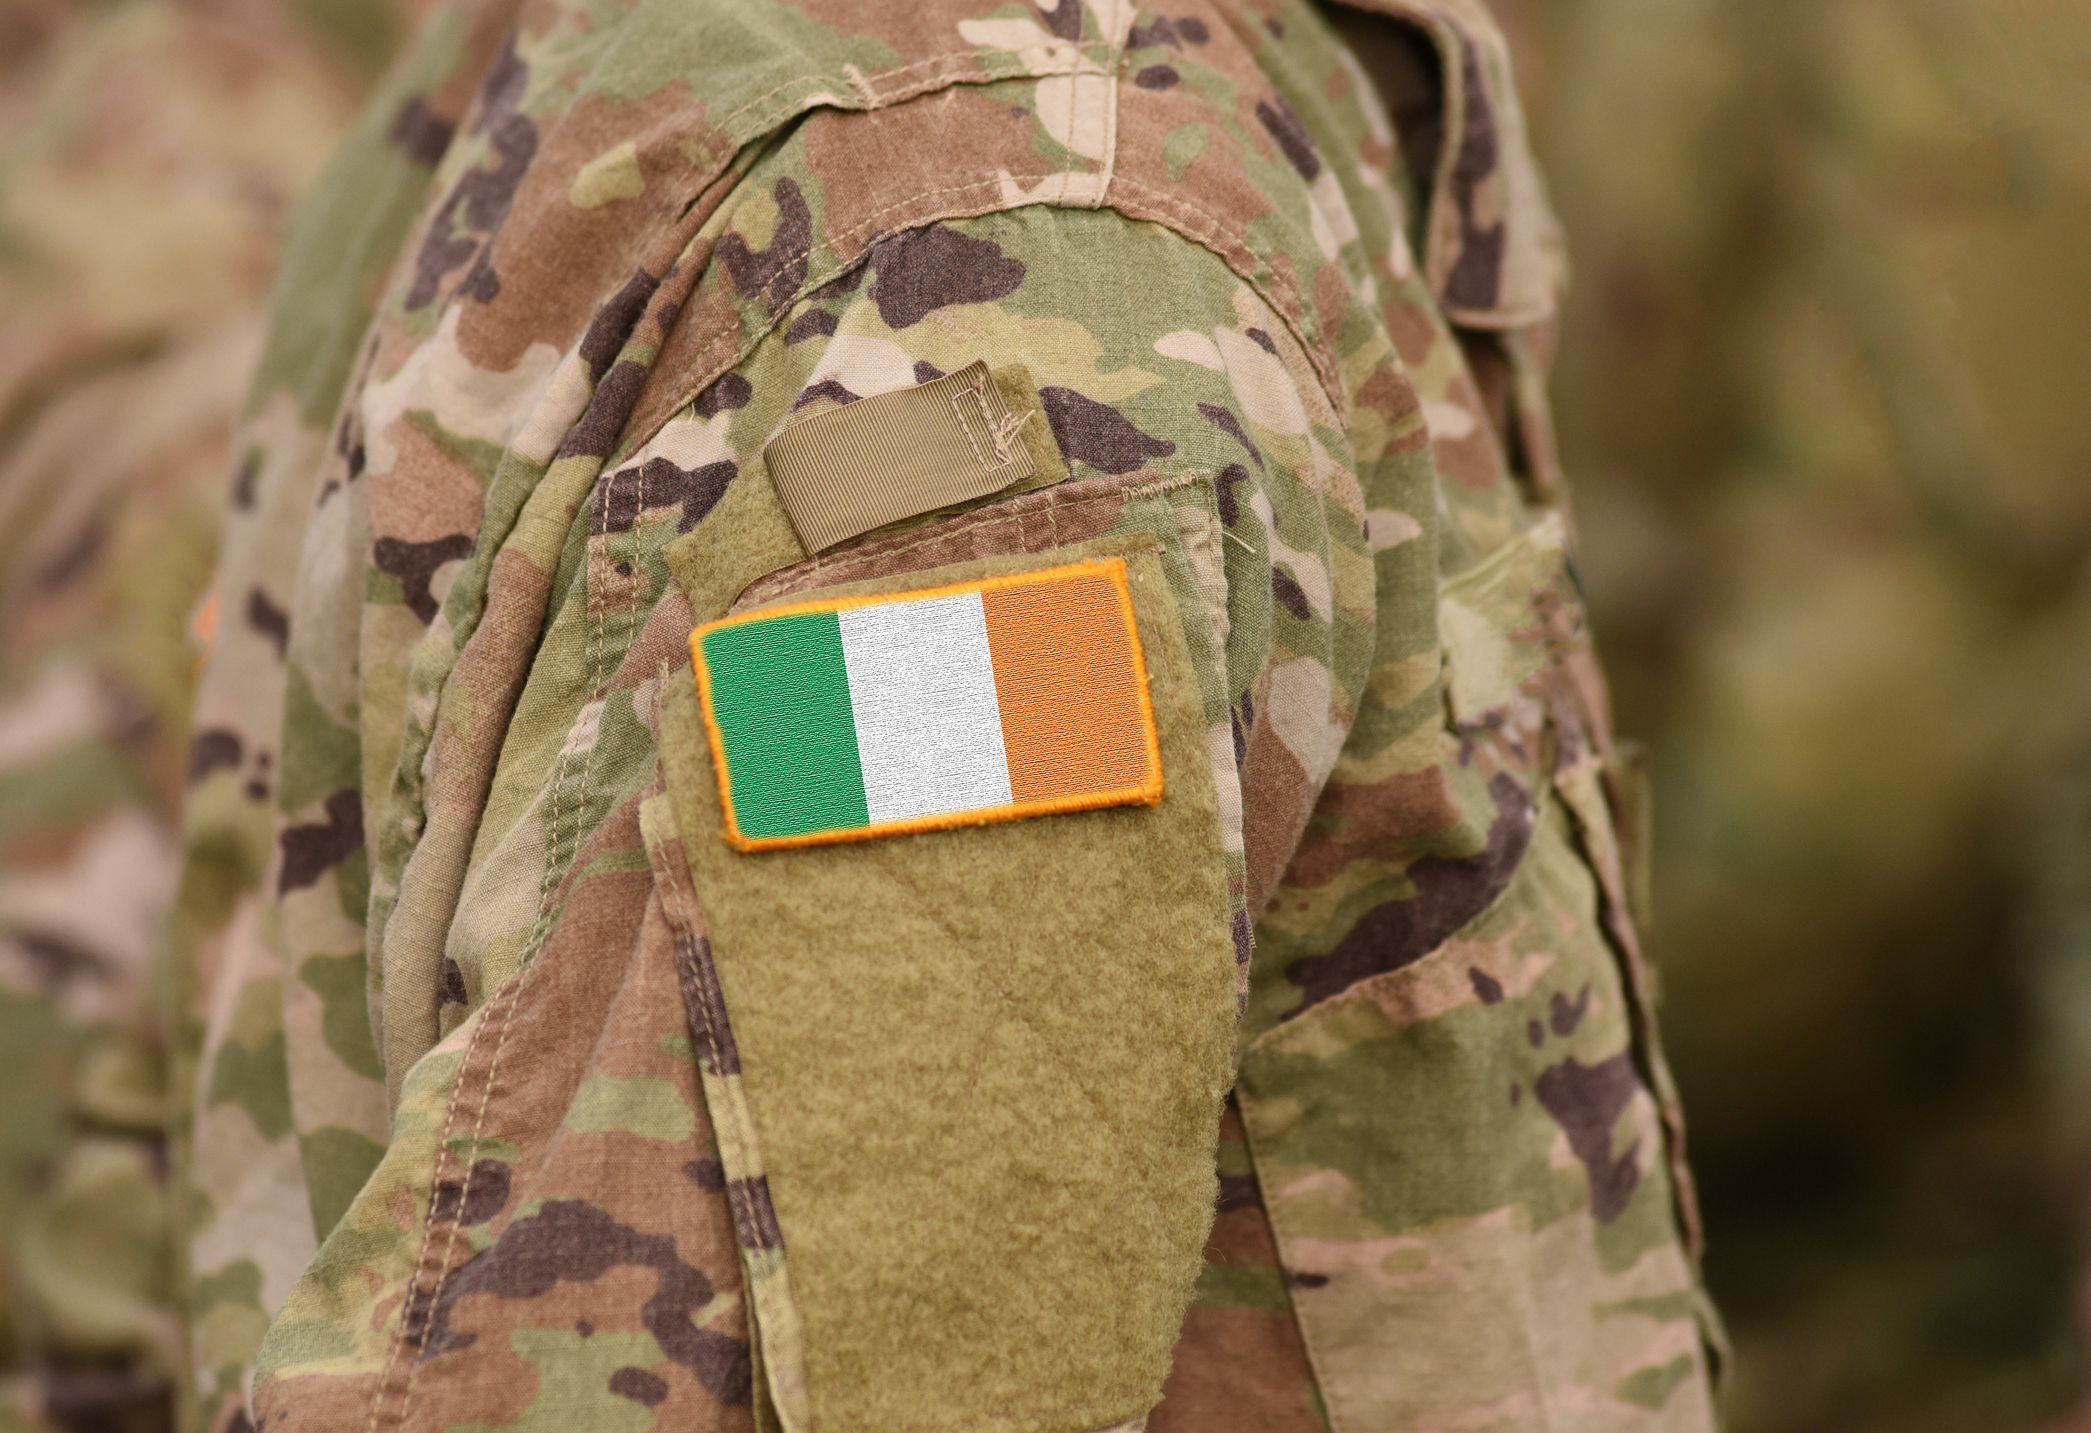 How to discover if your family was in the Irish military - IrishCentral